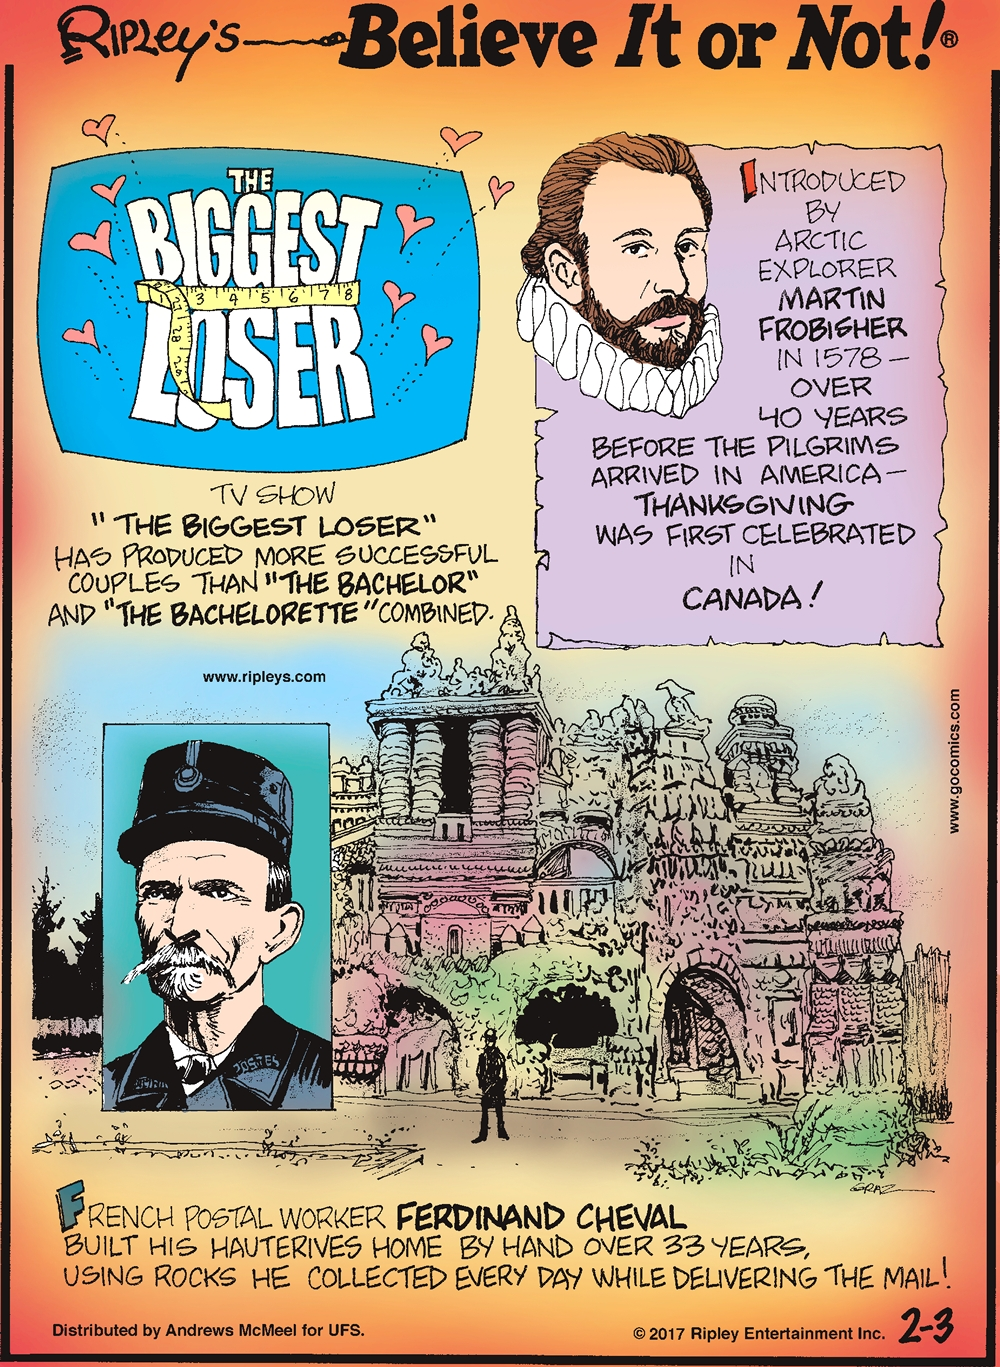 "TV show ""The Biggest Loser"" has produced more successful couples than ""The Bachelor"" and ""The Bachelorette"" combined.------------------------ Introduced by arctic explorer Martin Frobisher in 1578- over 40 years before the pilgrims arrived in America- Thanksgiving was first celebrated in Canada!-------------------- French postal worker Ferdinand Cheval built his Hauterives home by hand over 33 years, using rocks he collected every day while delivering the mail!"